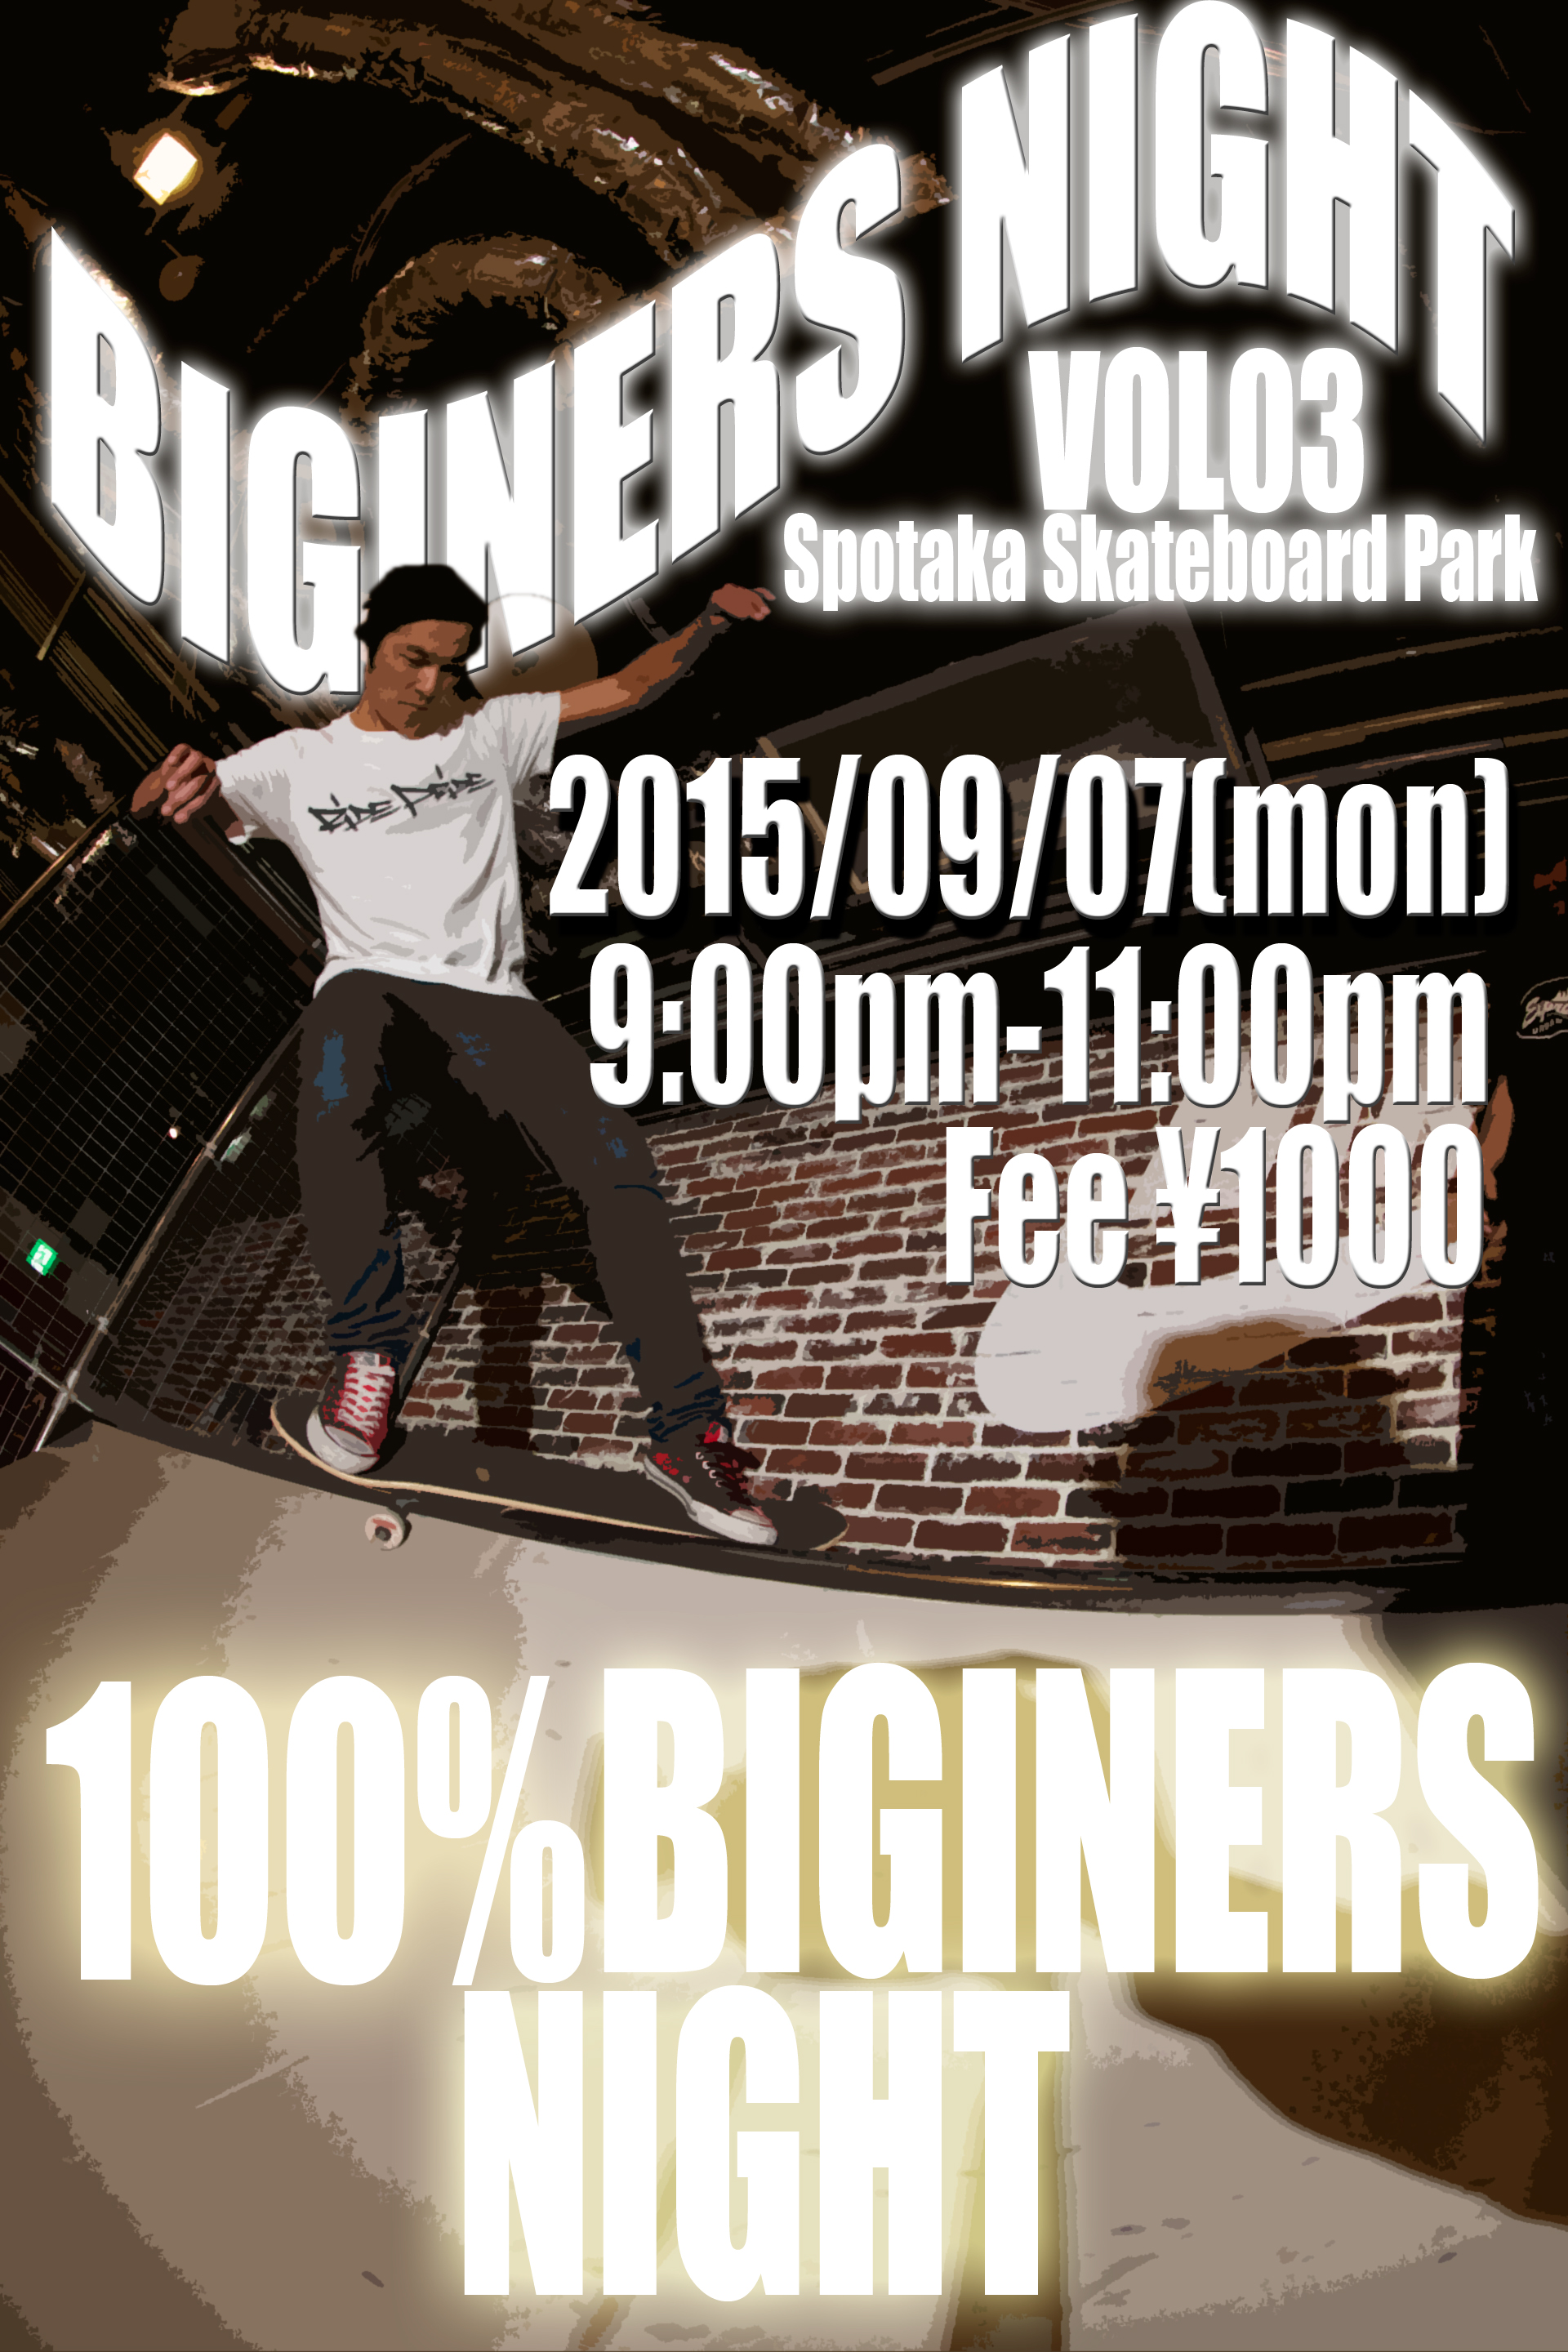 BIGINNERS NIGHT VOL3